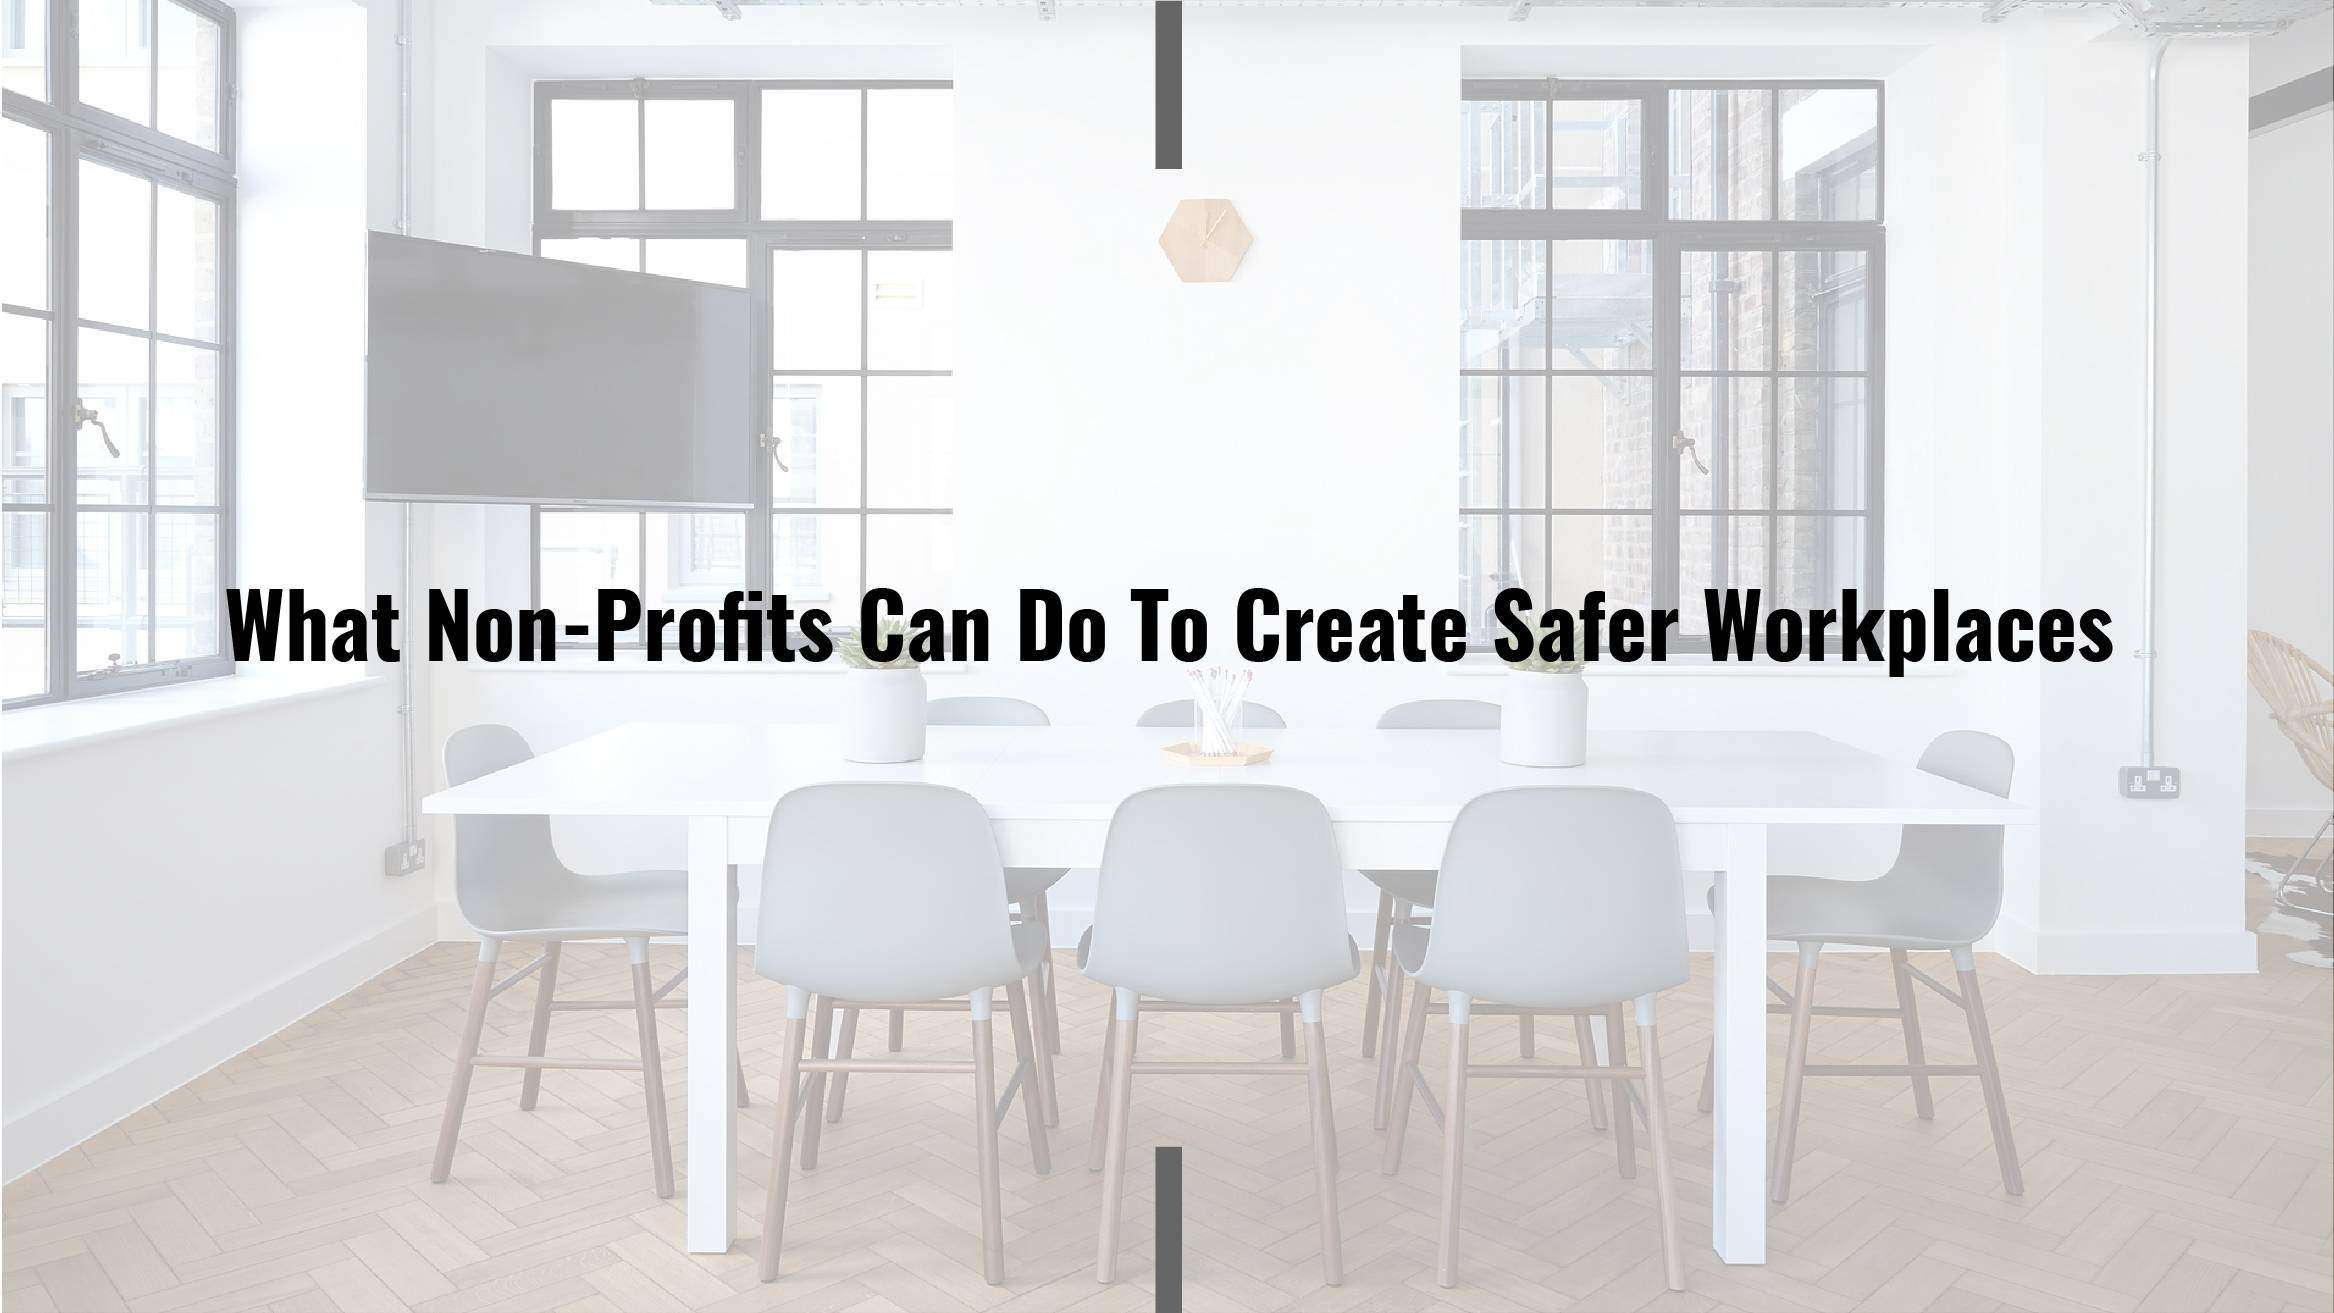 What Non-Profits Are Doing to Create Safer Workplaces